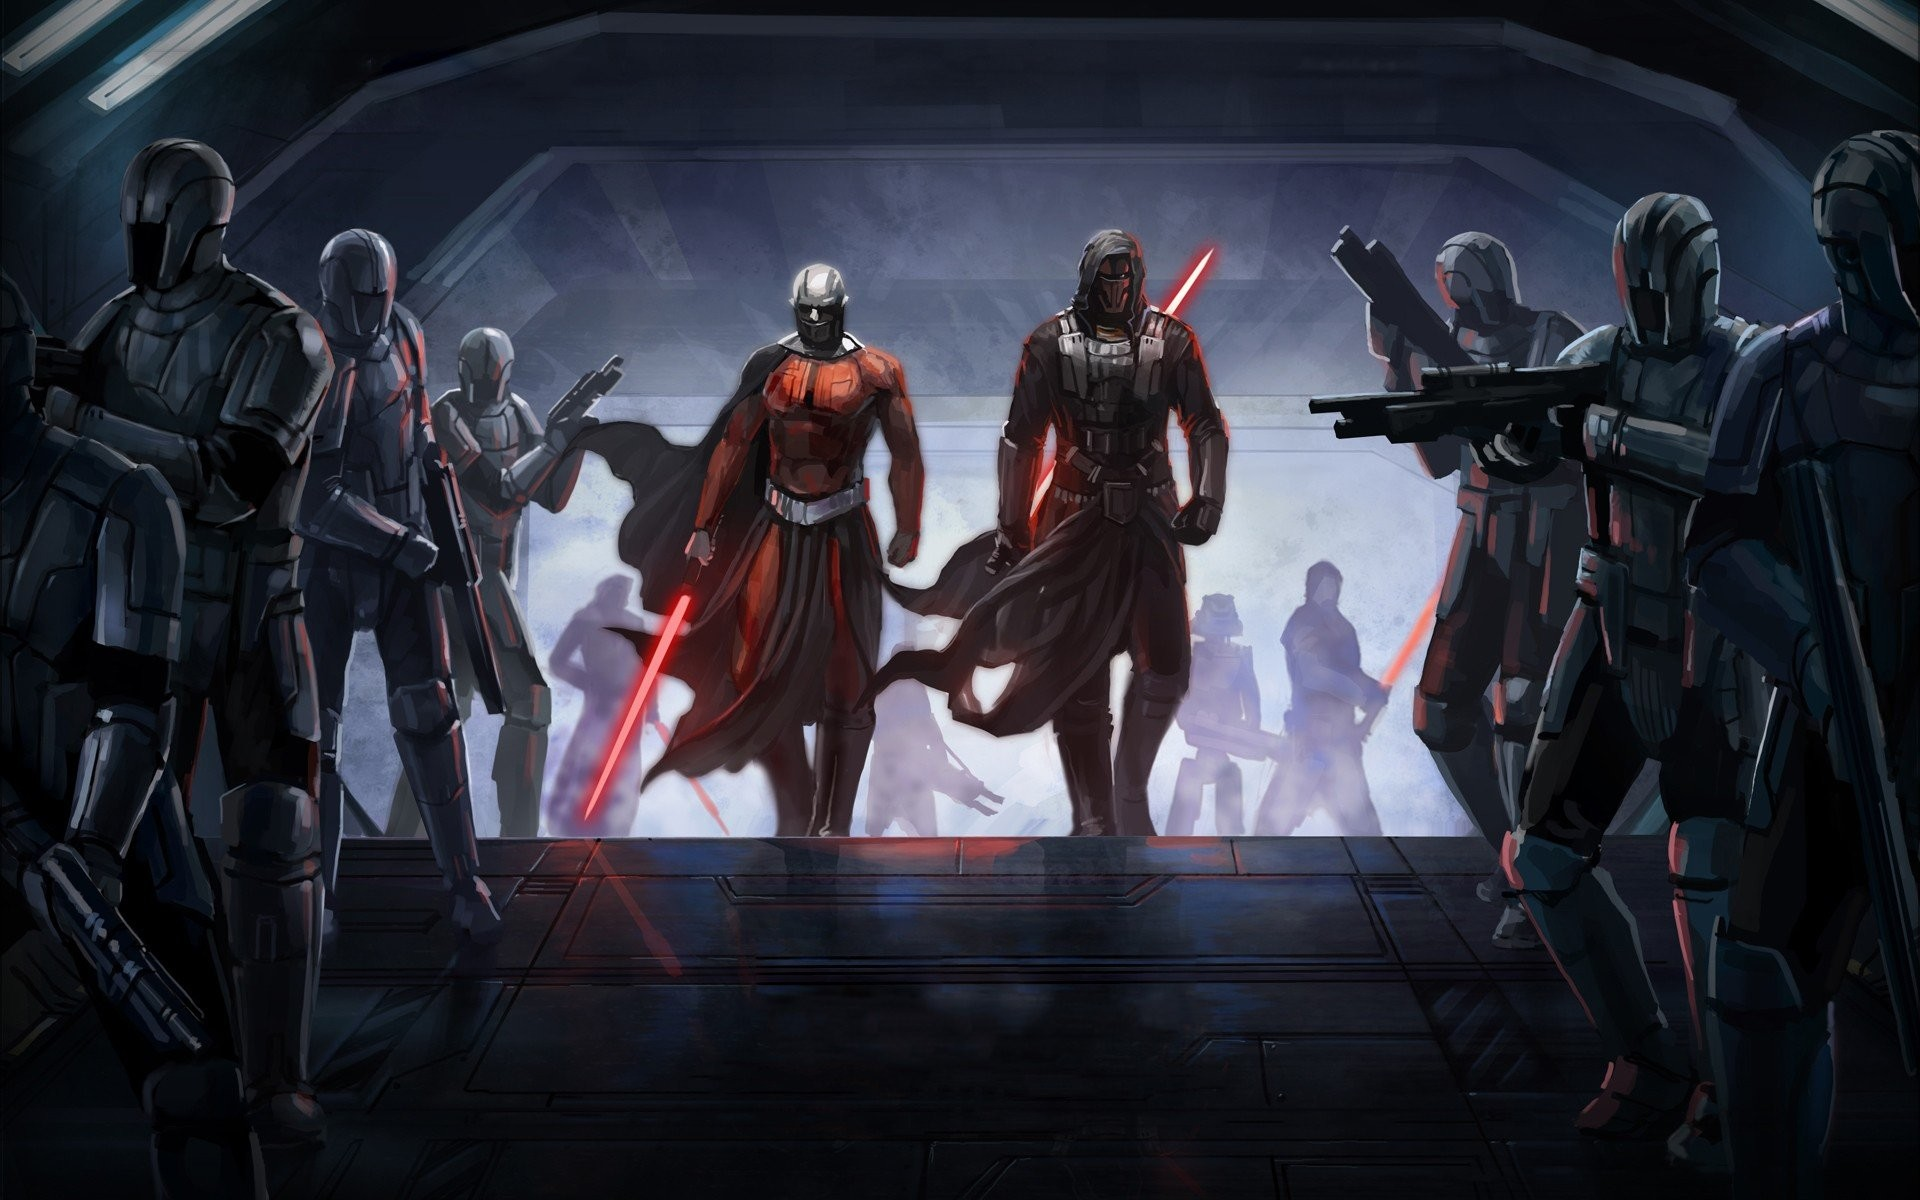 1920x1200 Star Wars video games Sith Kotor wallpaper |  | 296323 |  WallpaperUP